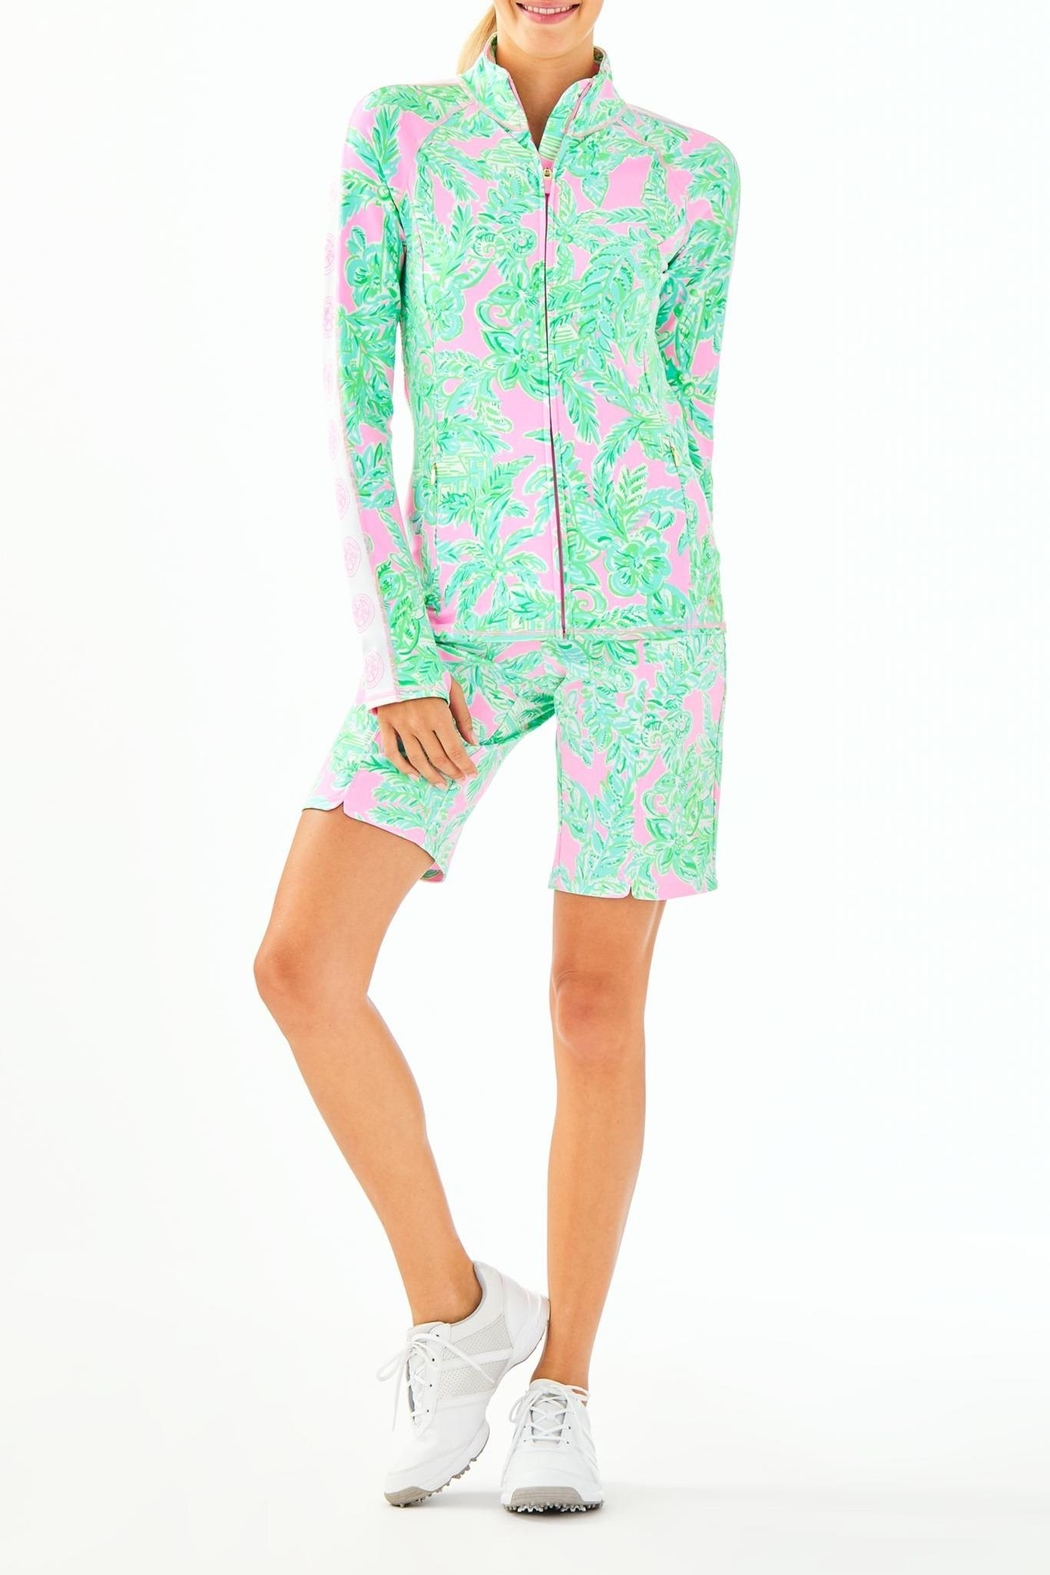 Lilly Pulitzer Luxletic Serena Zip-Up - Side Cropped Image